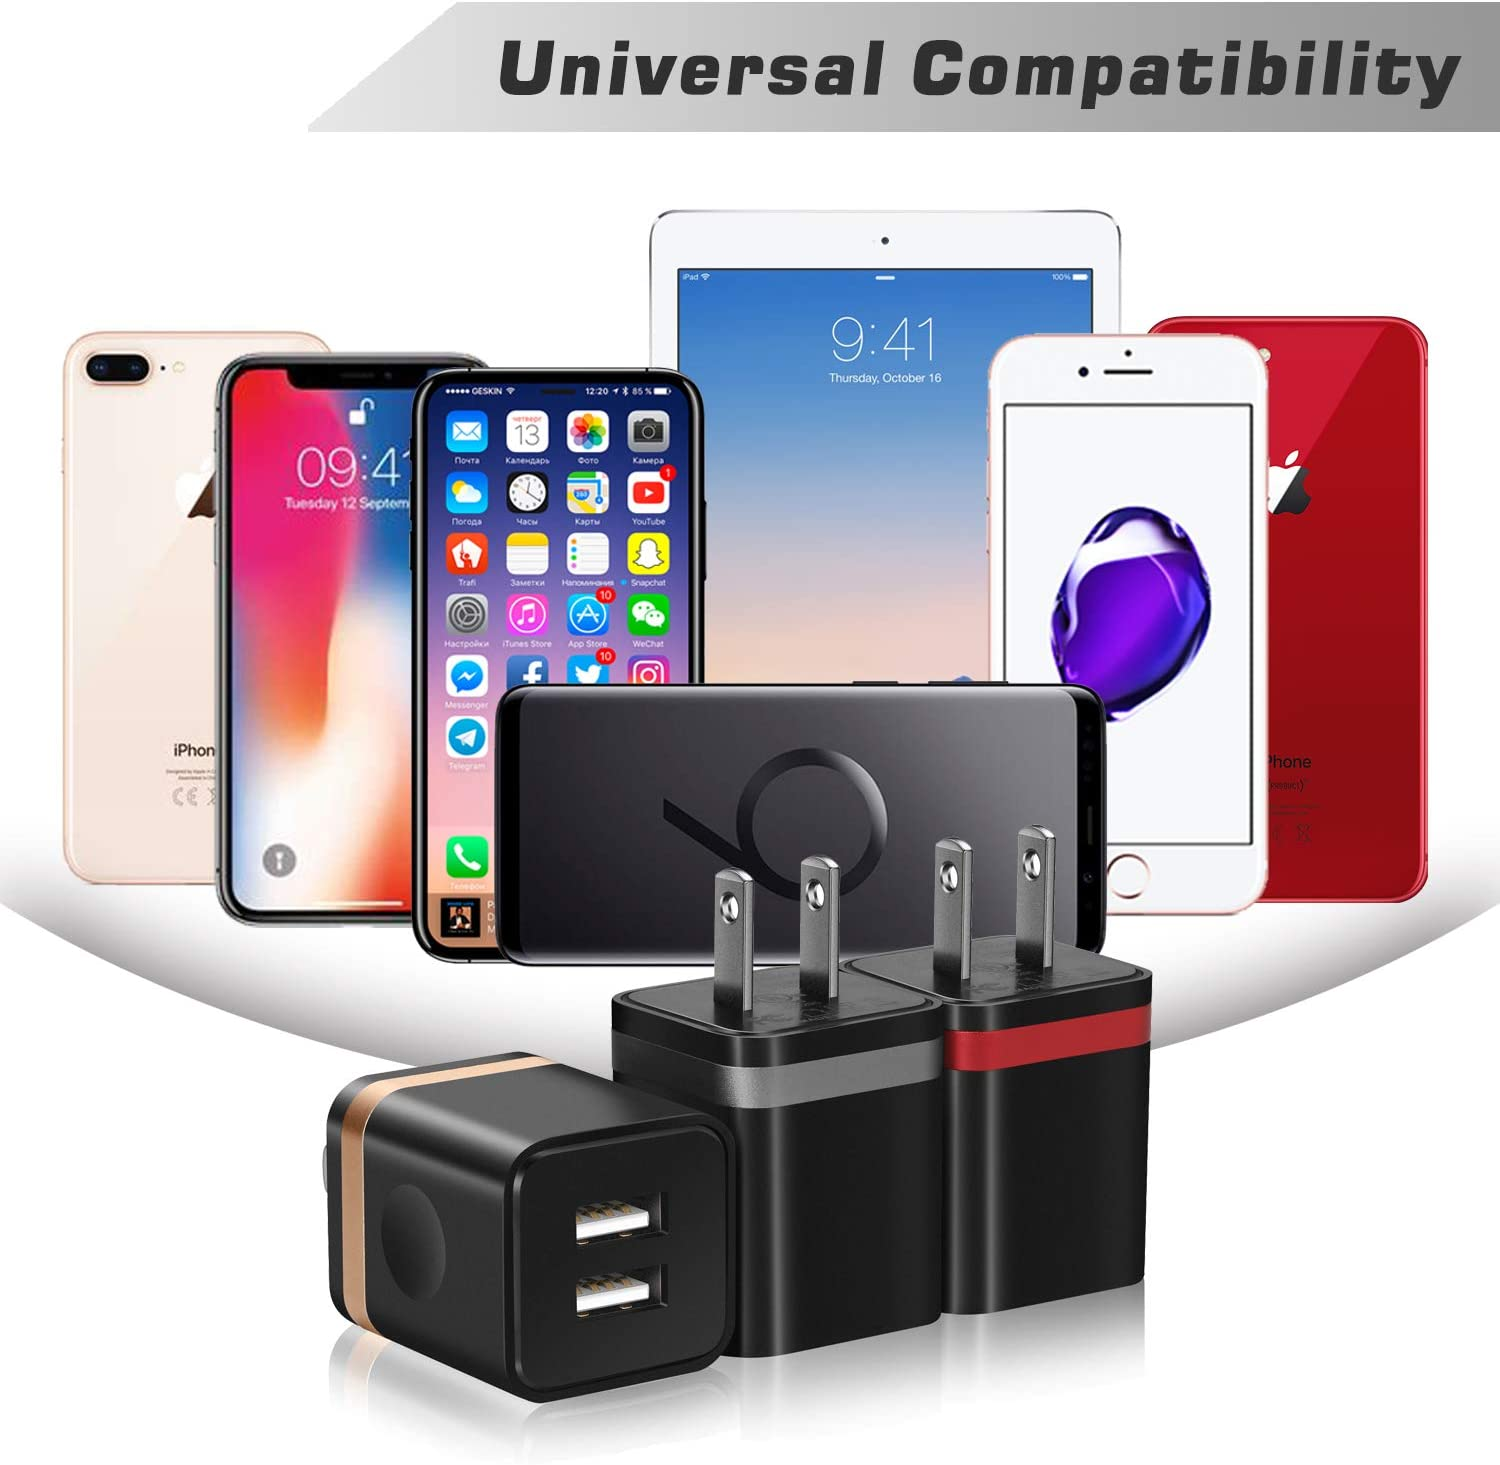 LG Samsung STELECH 3-Pack 2.1A Dual Port USB Plug Power Adapter Charging Cube Compatible with iPhone Xs Max XR Xs X 8 7 6 Plus 5S 4S iPad Android Phone and More USB Wall Charger Moto